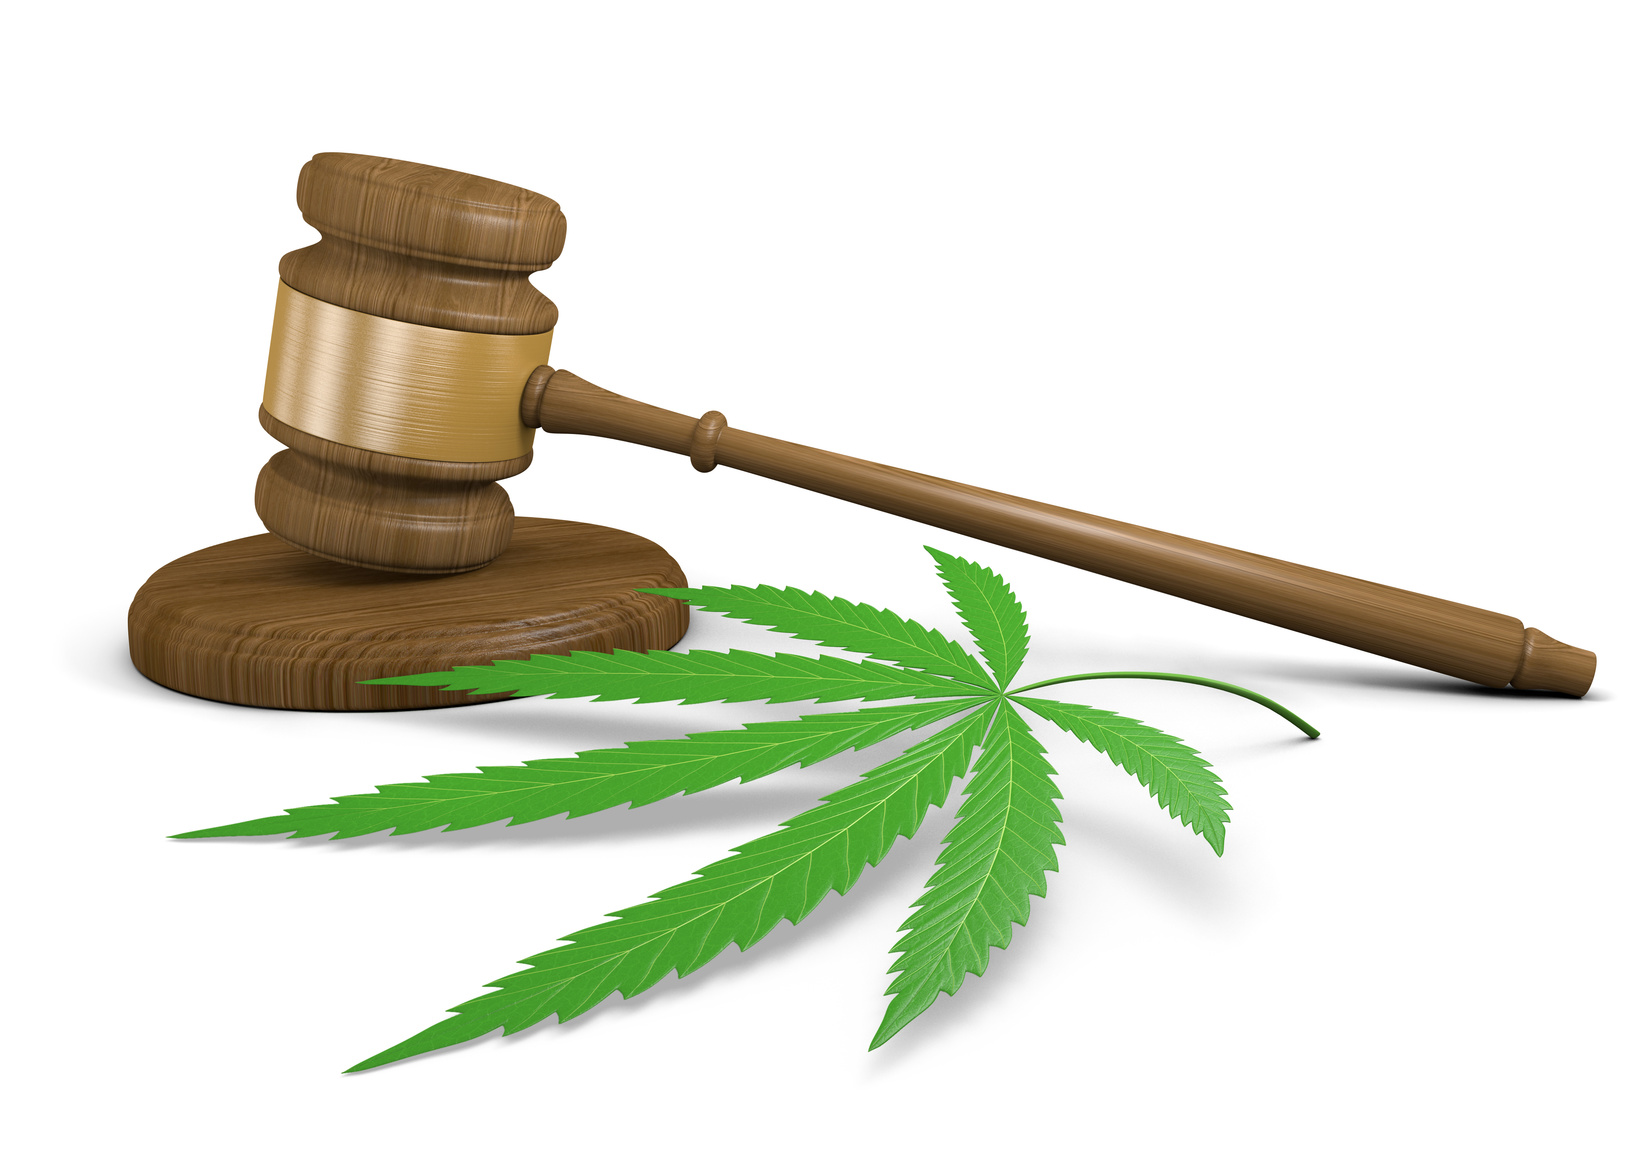 Fotolia_97523429_Marijuana drug use laws and legalization_M